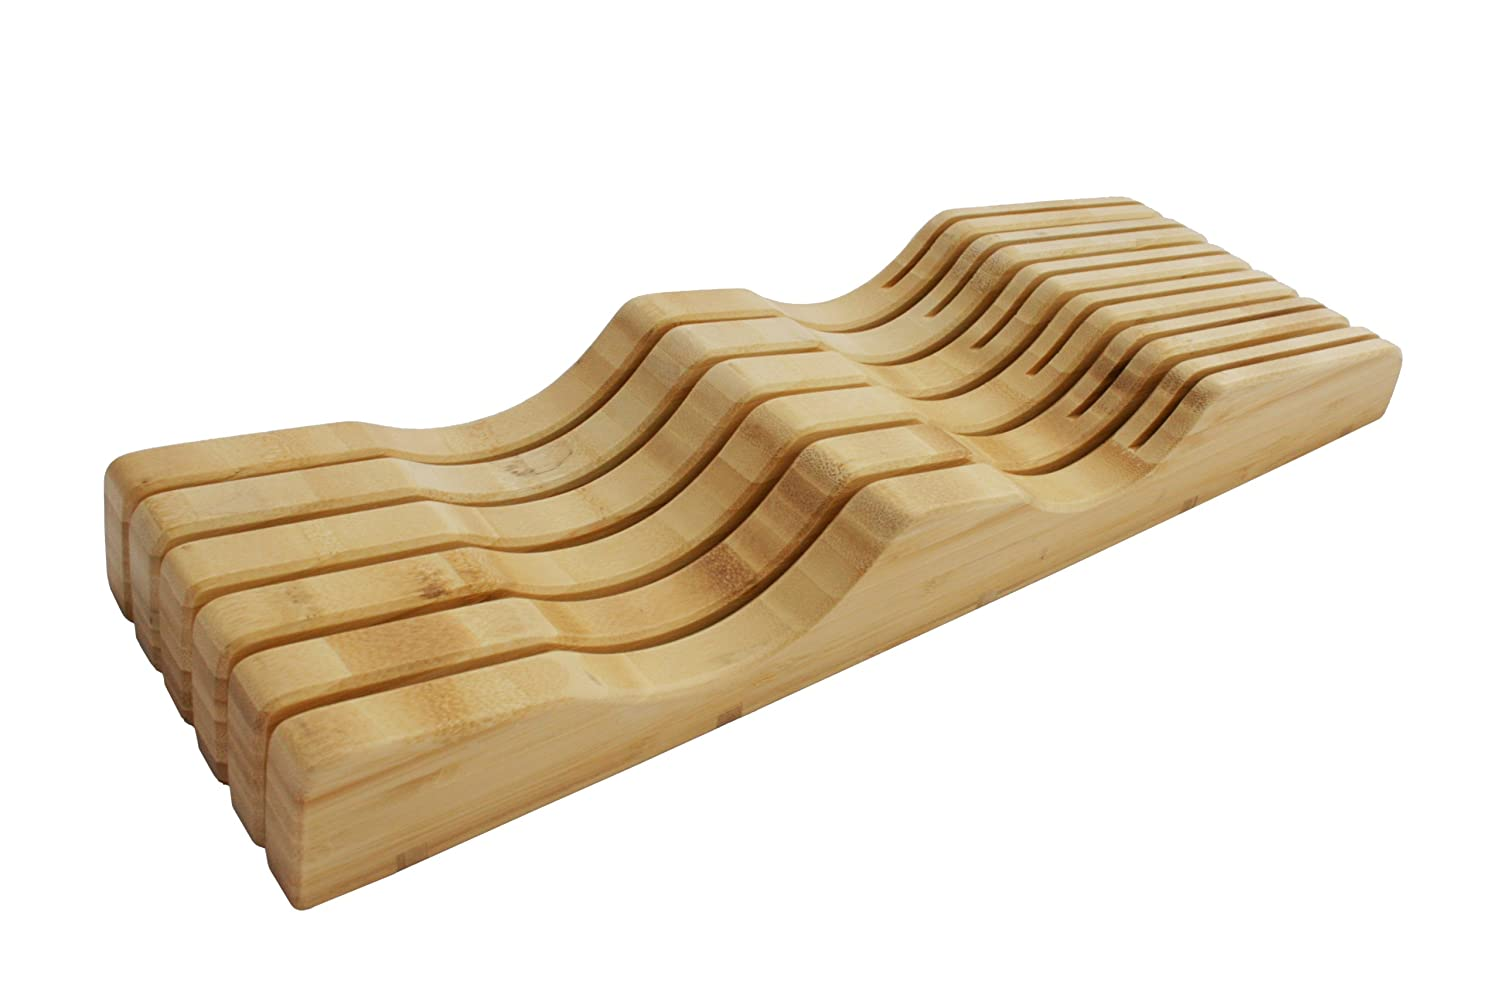 In-Drawer Bamboo Knife Block by Shenzhen Knives